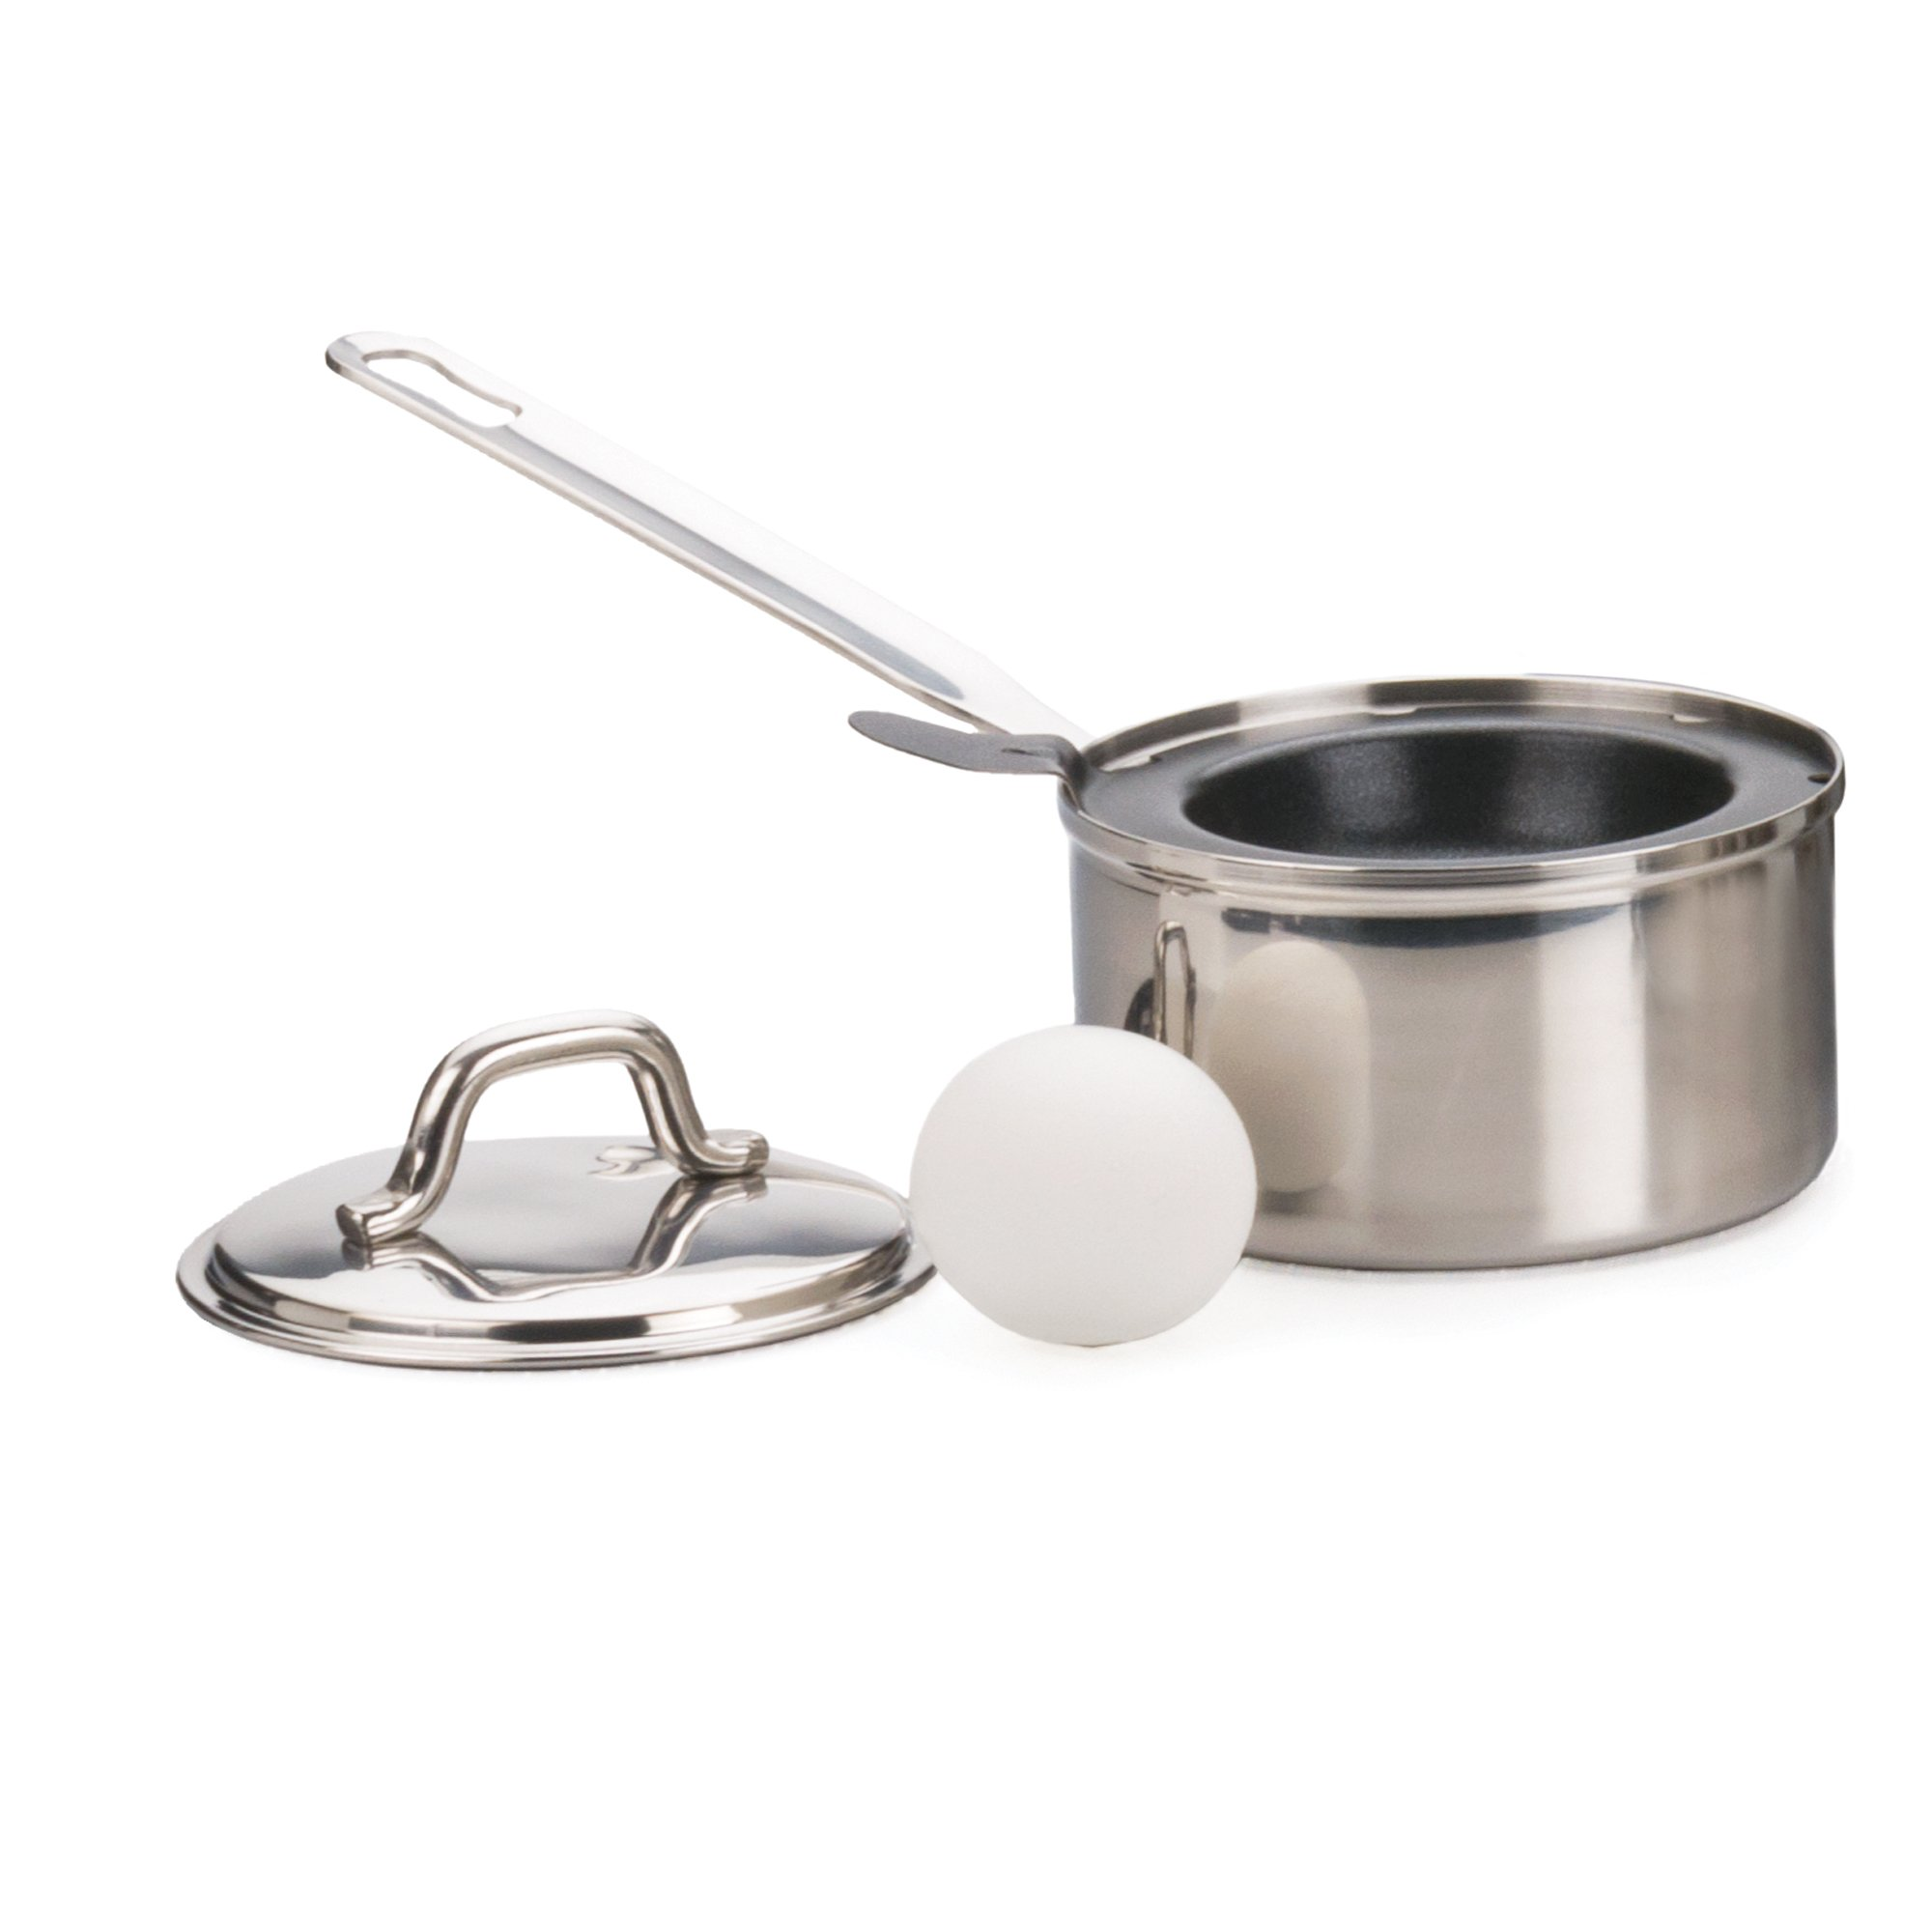 RSVP International Endurance Stainless Steel Poacher,Black & Silver,1-Egg by RSVP